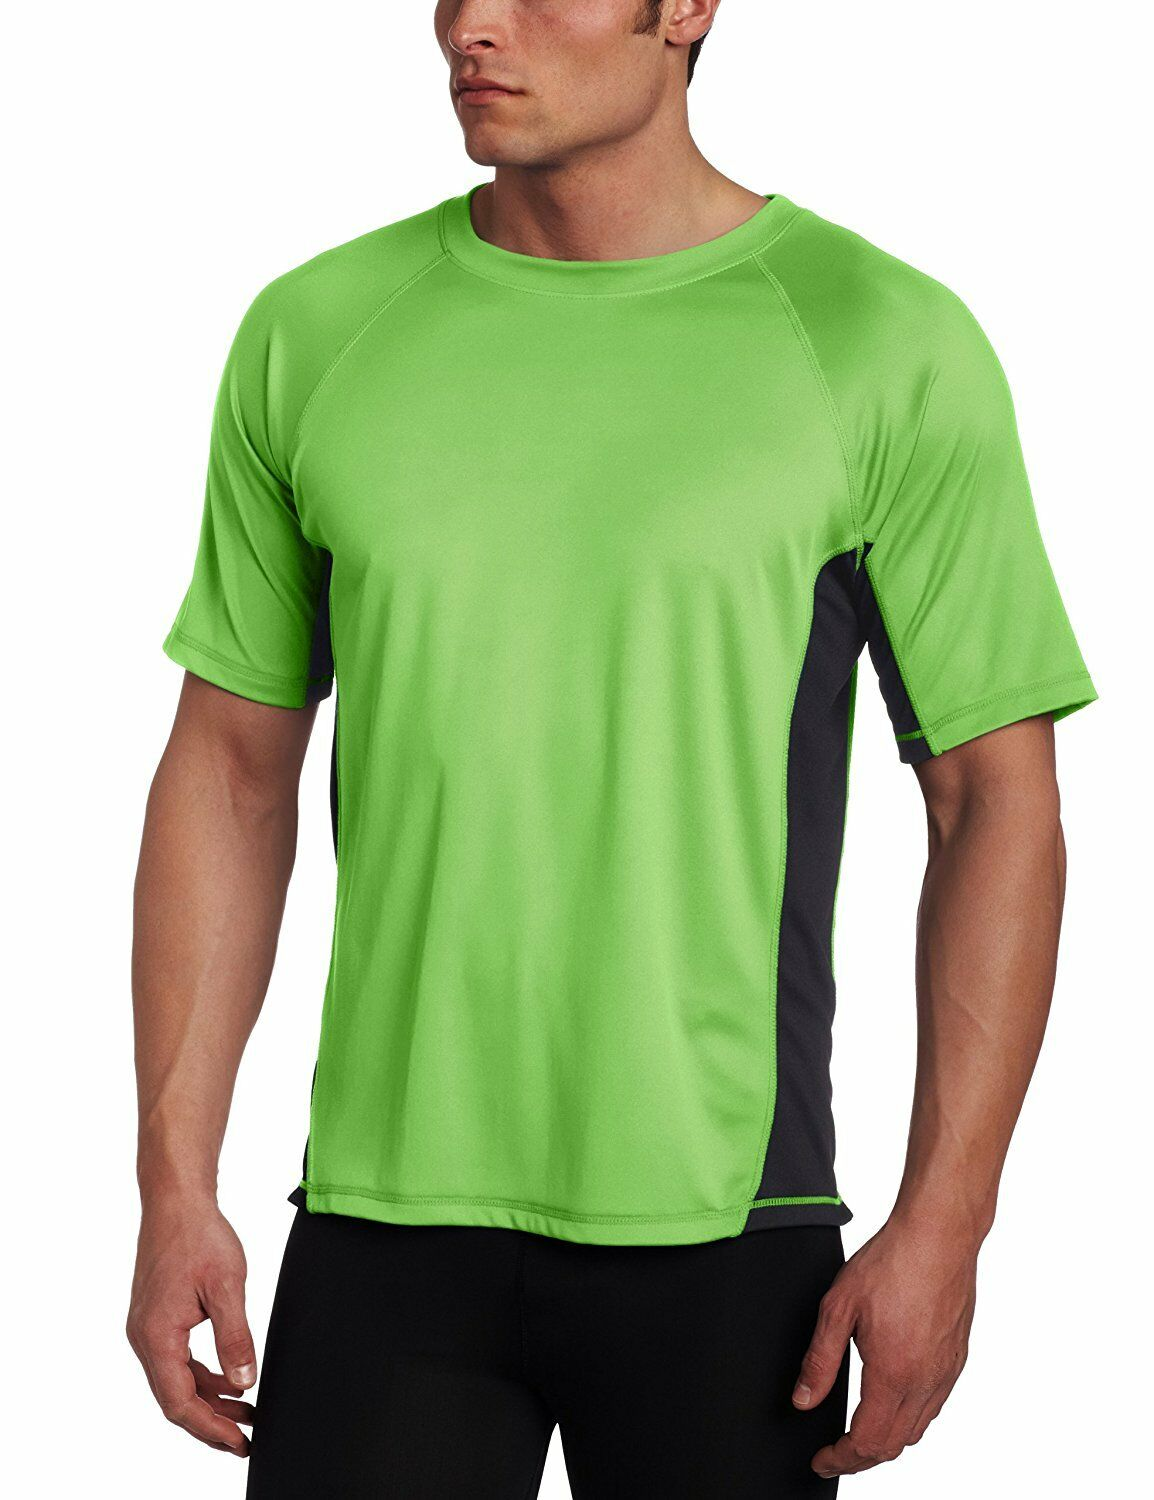 Kanu Surf Men's CB Rashguard UPF 50+ Swim Shirt Neon Green X